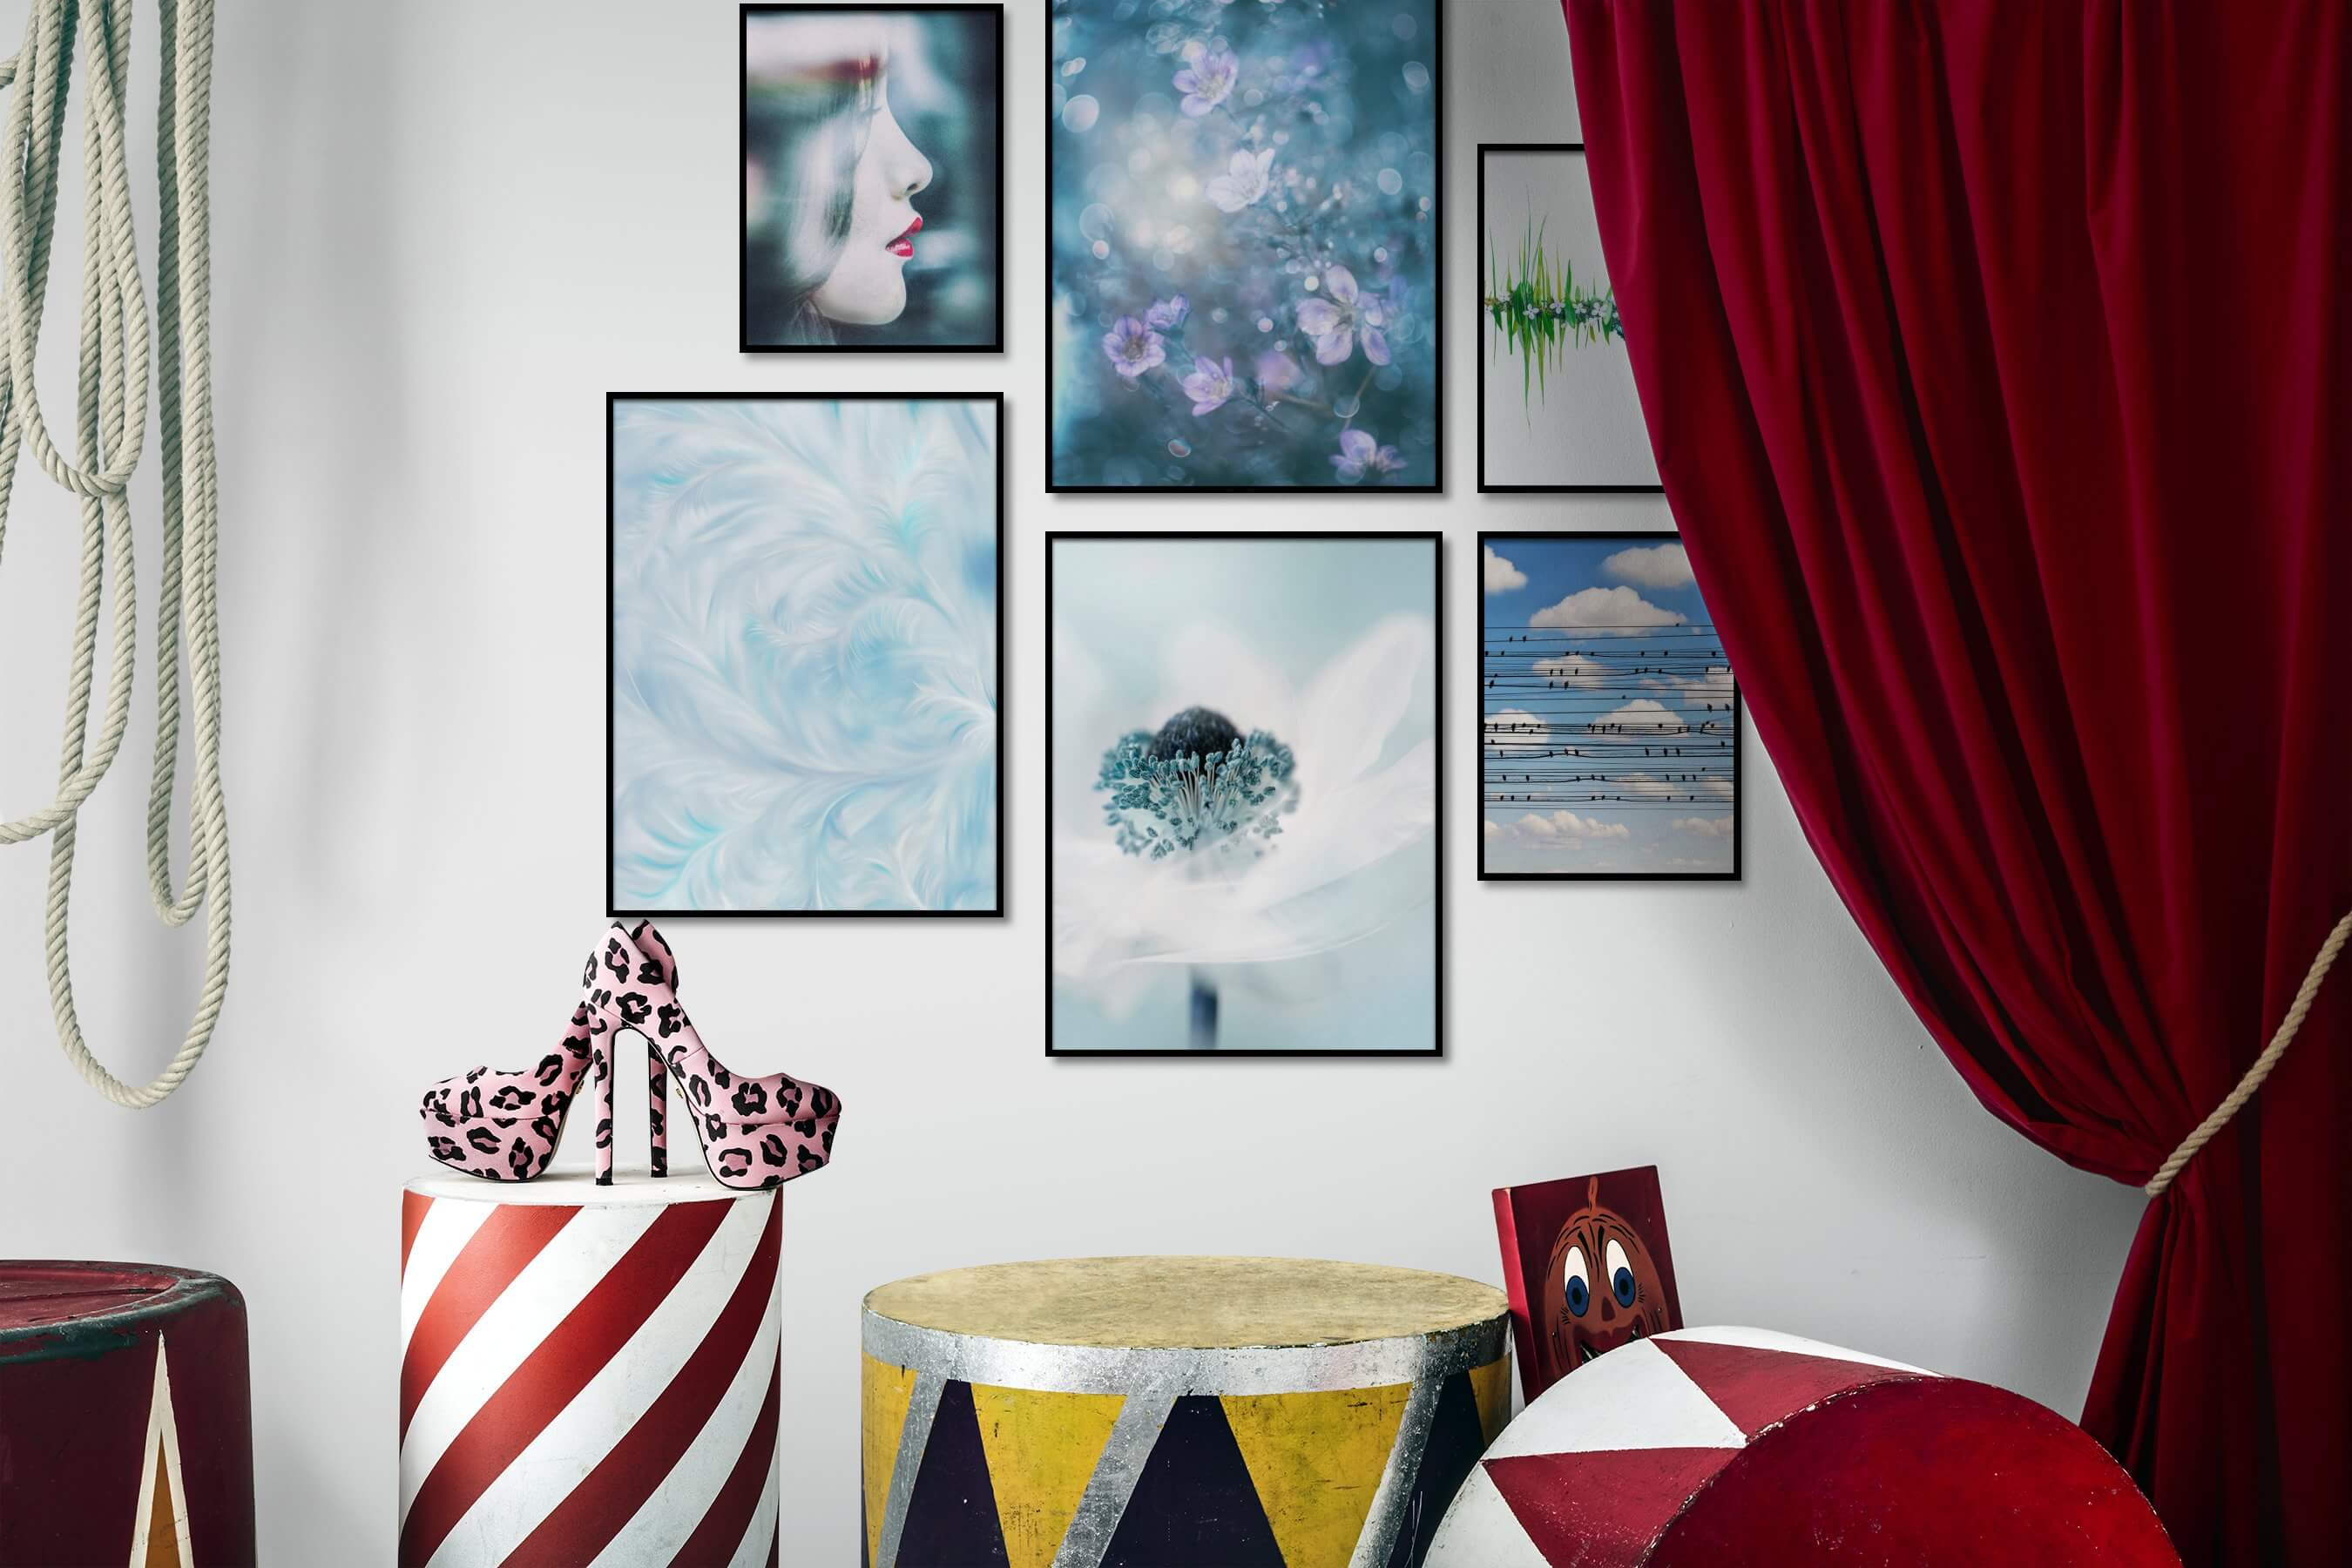 Gallery wall idea with six framed pictures arranged on a wall depicting Fashion & Beauty, Flowers & Plants, For the Moderate, Mindfulness, For the Minimalist, Vintage, and Animals